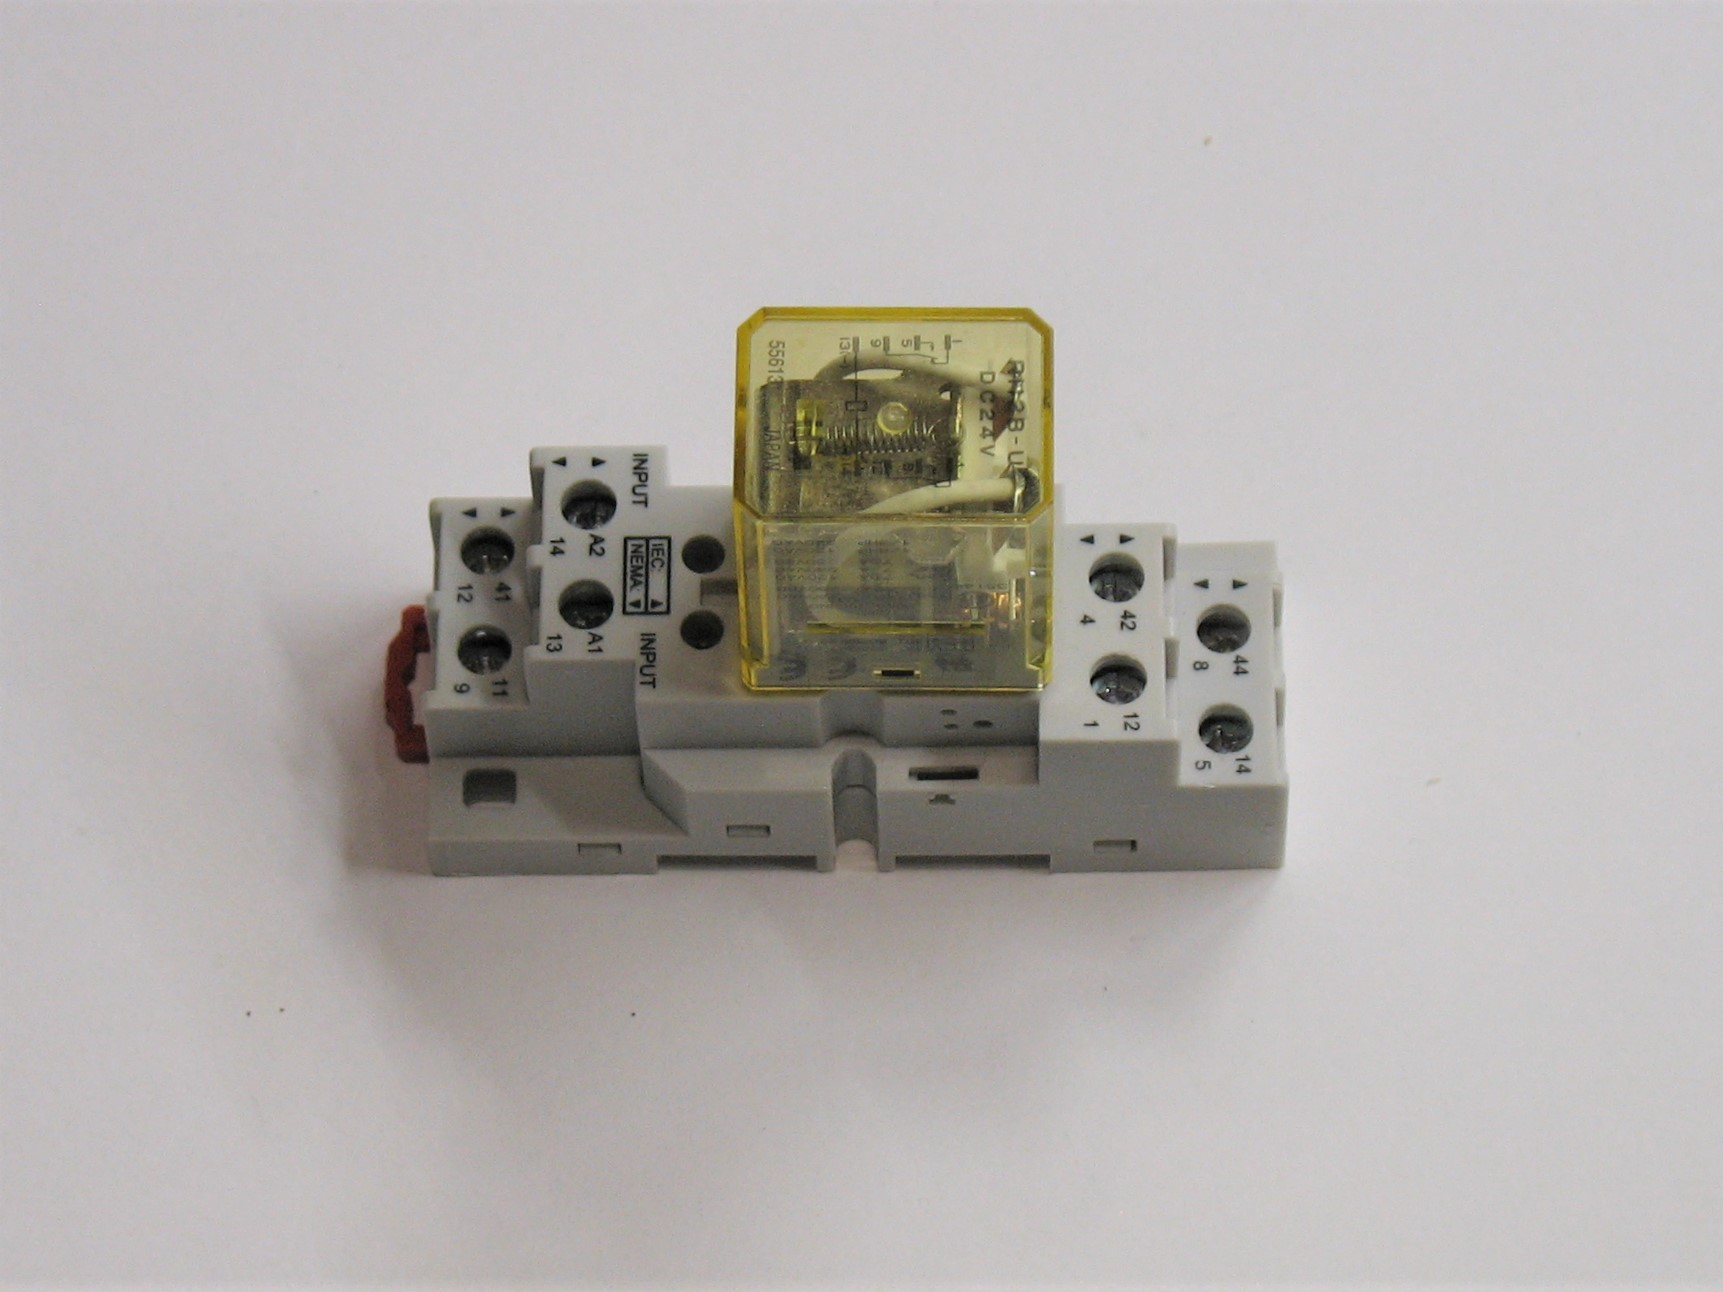 a dpdt relay set in a DIN Rail mounting socket